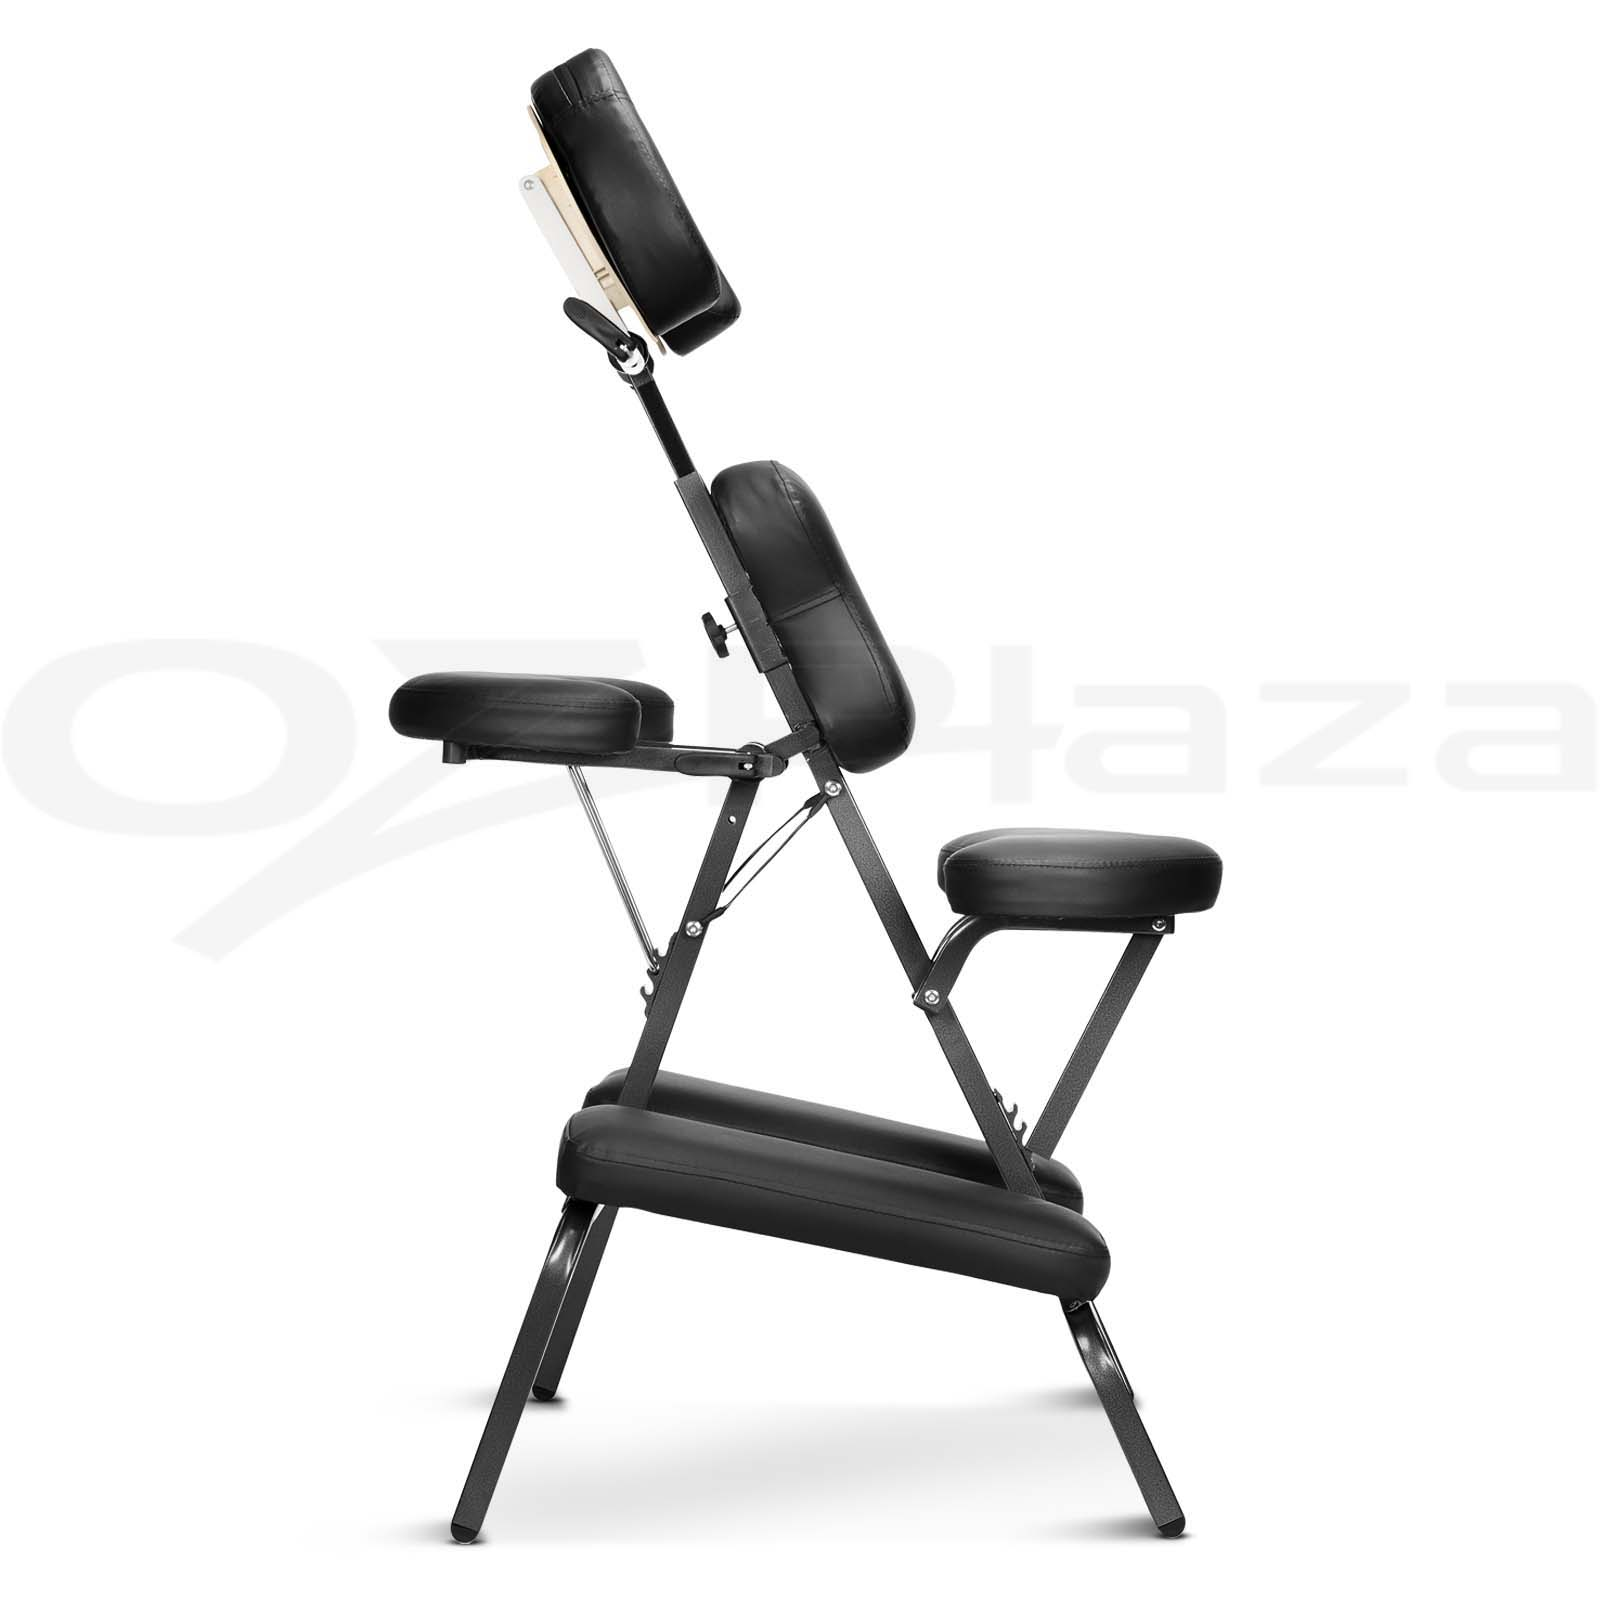 Portable Tattoo Chair Aluminium Portable Massage Chair Beauty Therapy Bed Tattoo